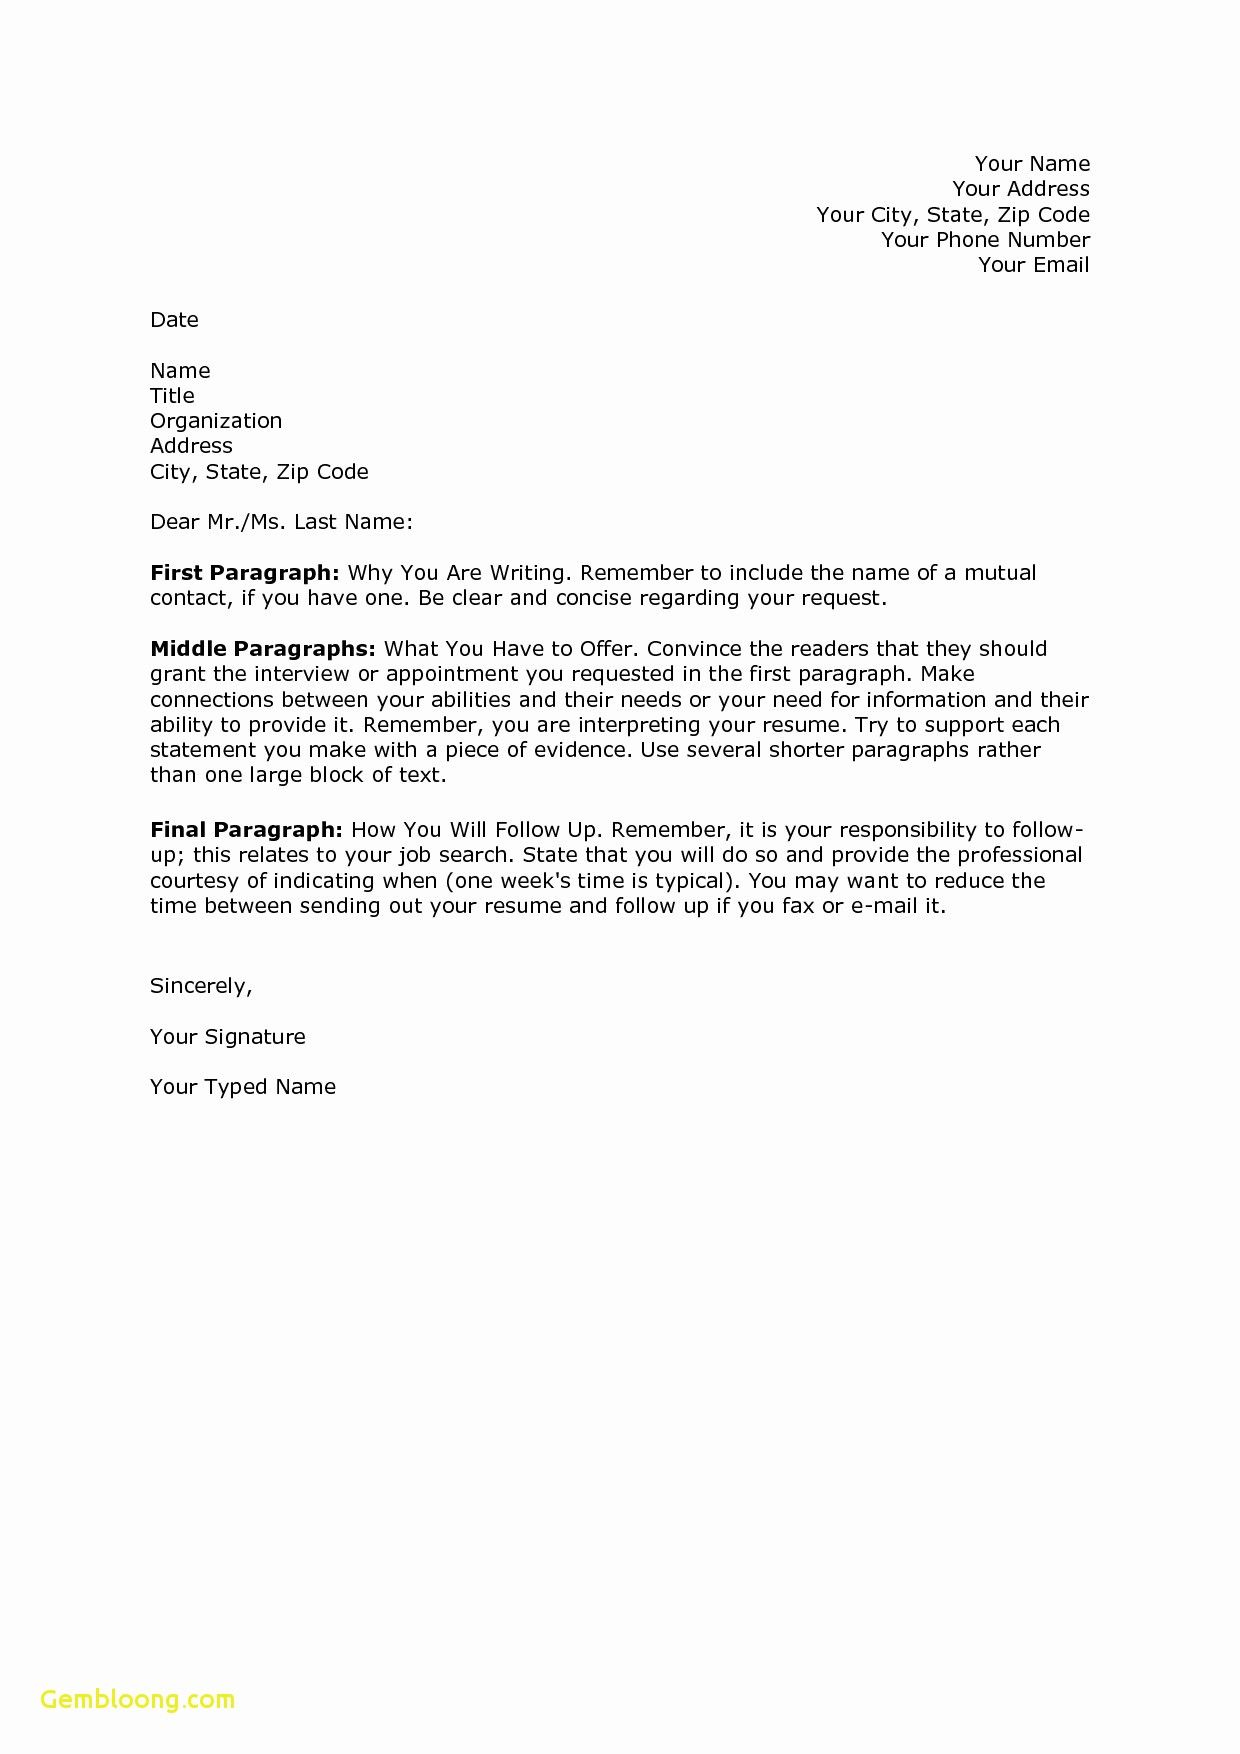 Cover Letter Sample For Job Application Doc With Images Letter